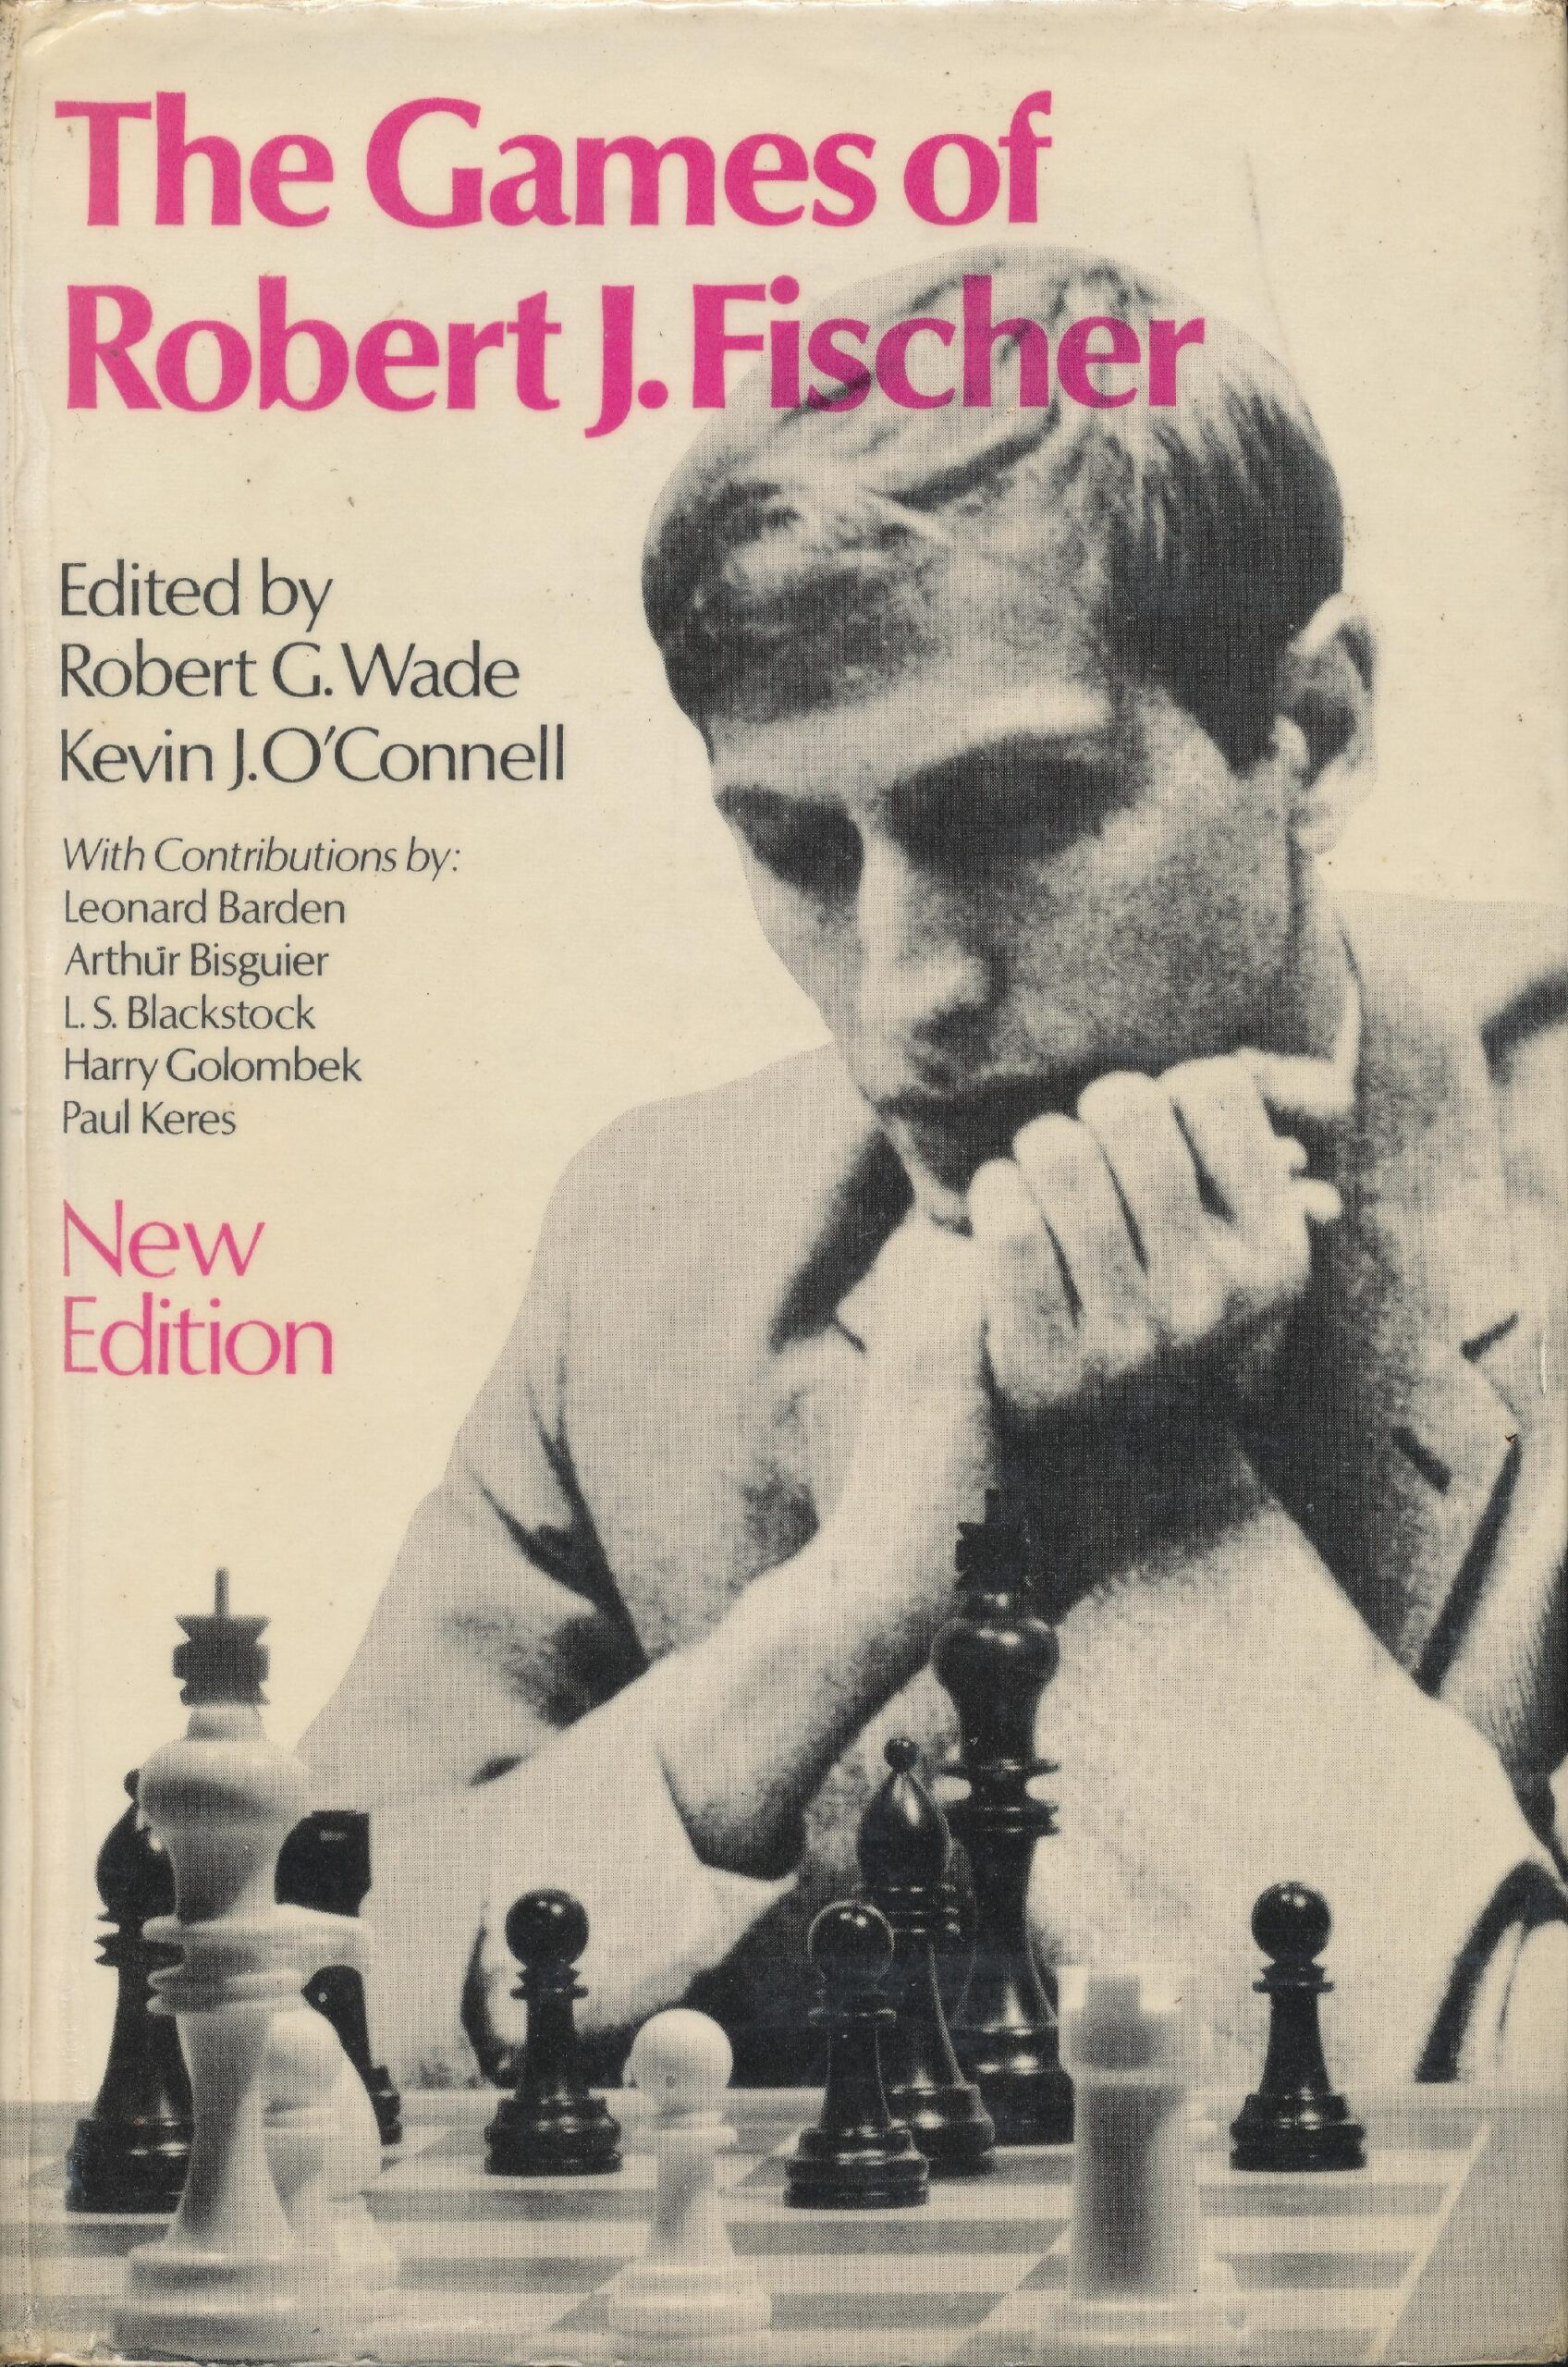 The Games of Robert J. Fischer, Robert Wade and O'Connell, Batsford 1972, 2nd ed. 1972, reprinted 1973, First limp edition 1981, Reprinted 1985, 1981, 1989, Second edition (The Complete Games of Bobby Fischer) 1992